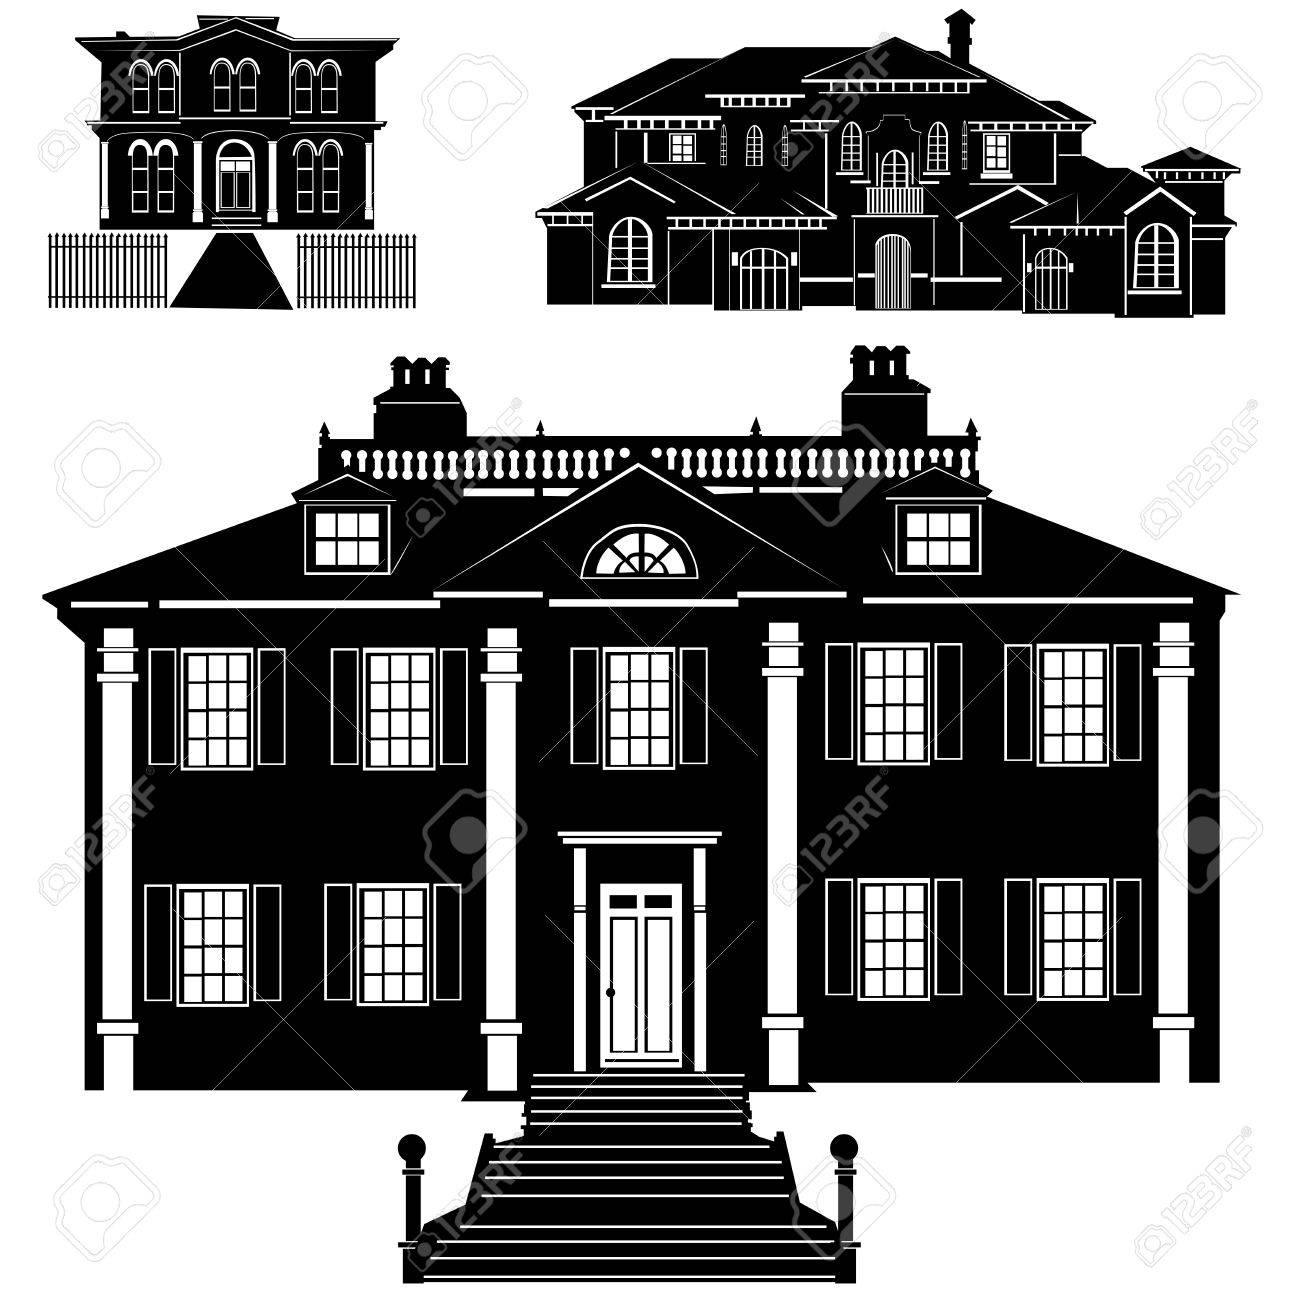 residences vector Stock Vector - 9402029